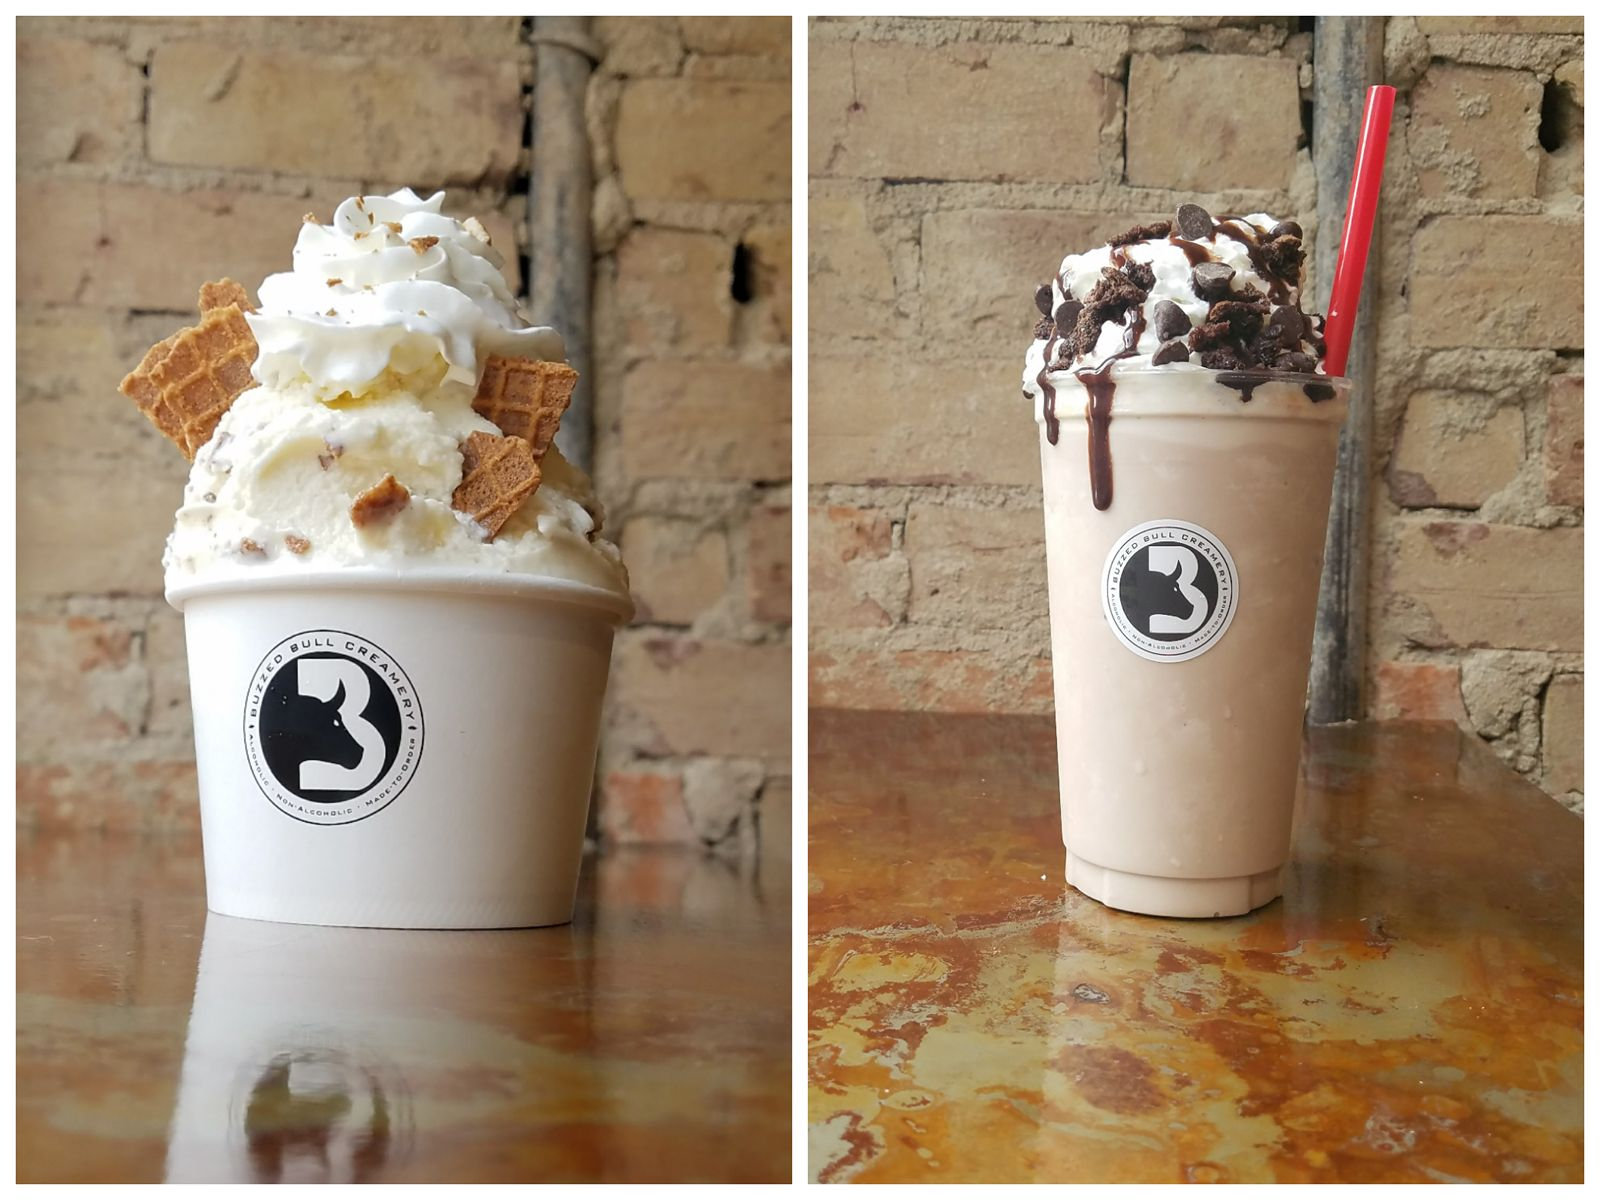 Roll On In & Buzzed Bull Creamery Keep Growing Momentum with Another Co-branded Space